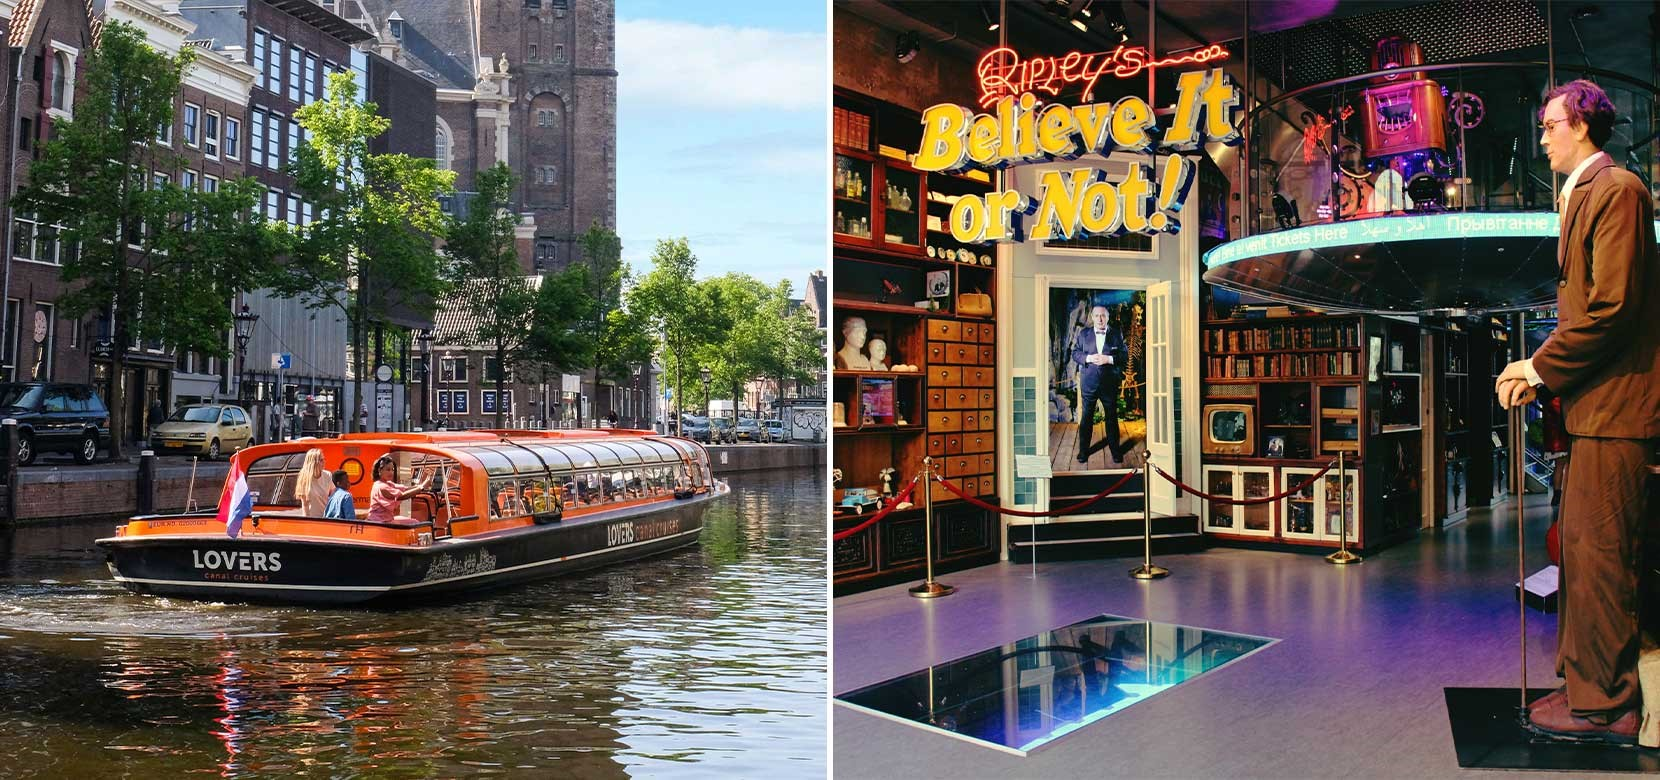 Ripley's Believe it or Not + Amsterdam Canal Cruise